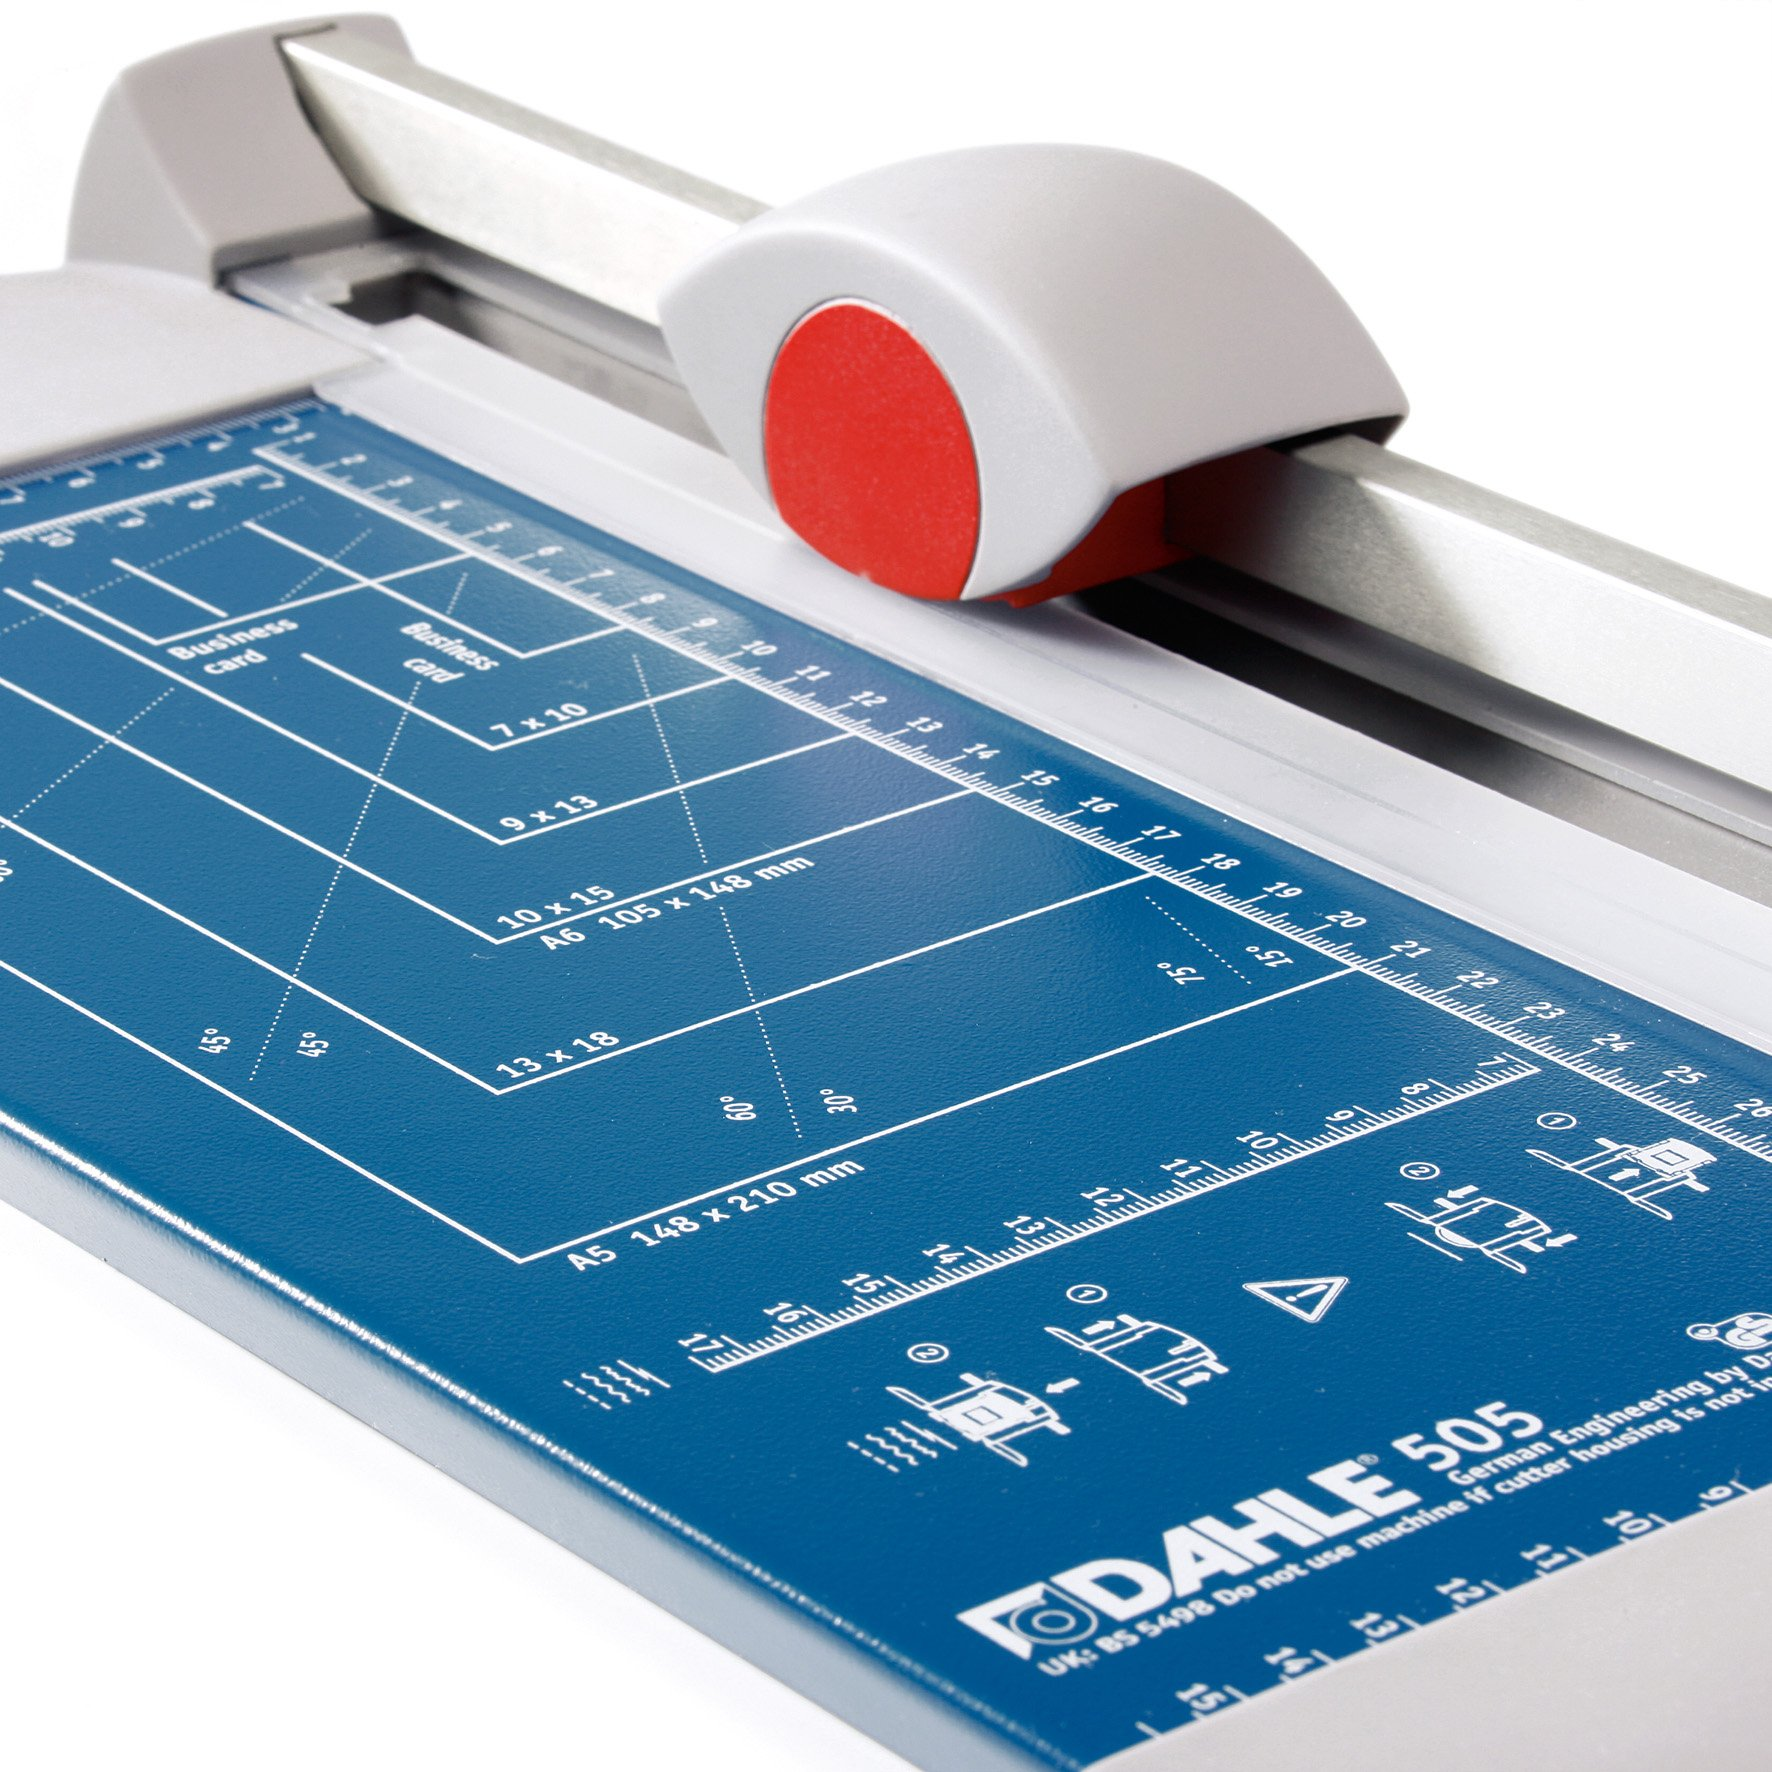 Dahle A4 Personal Trimmer Cutting Units for Different Cut Shapes 320mm Cutting Length/ 0.6mm Cutting Capacity - Blue